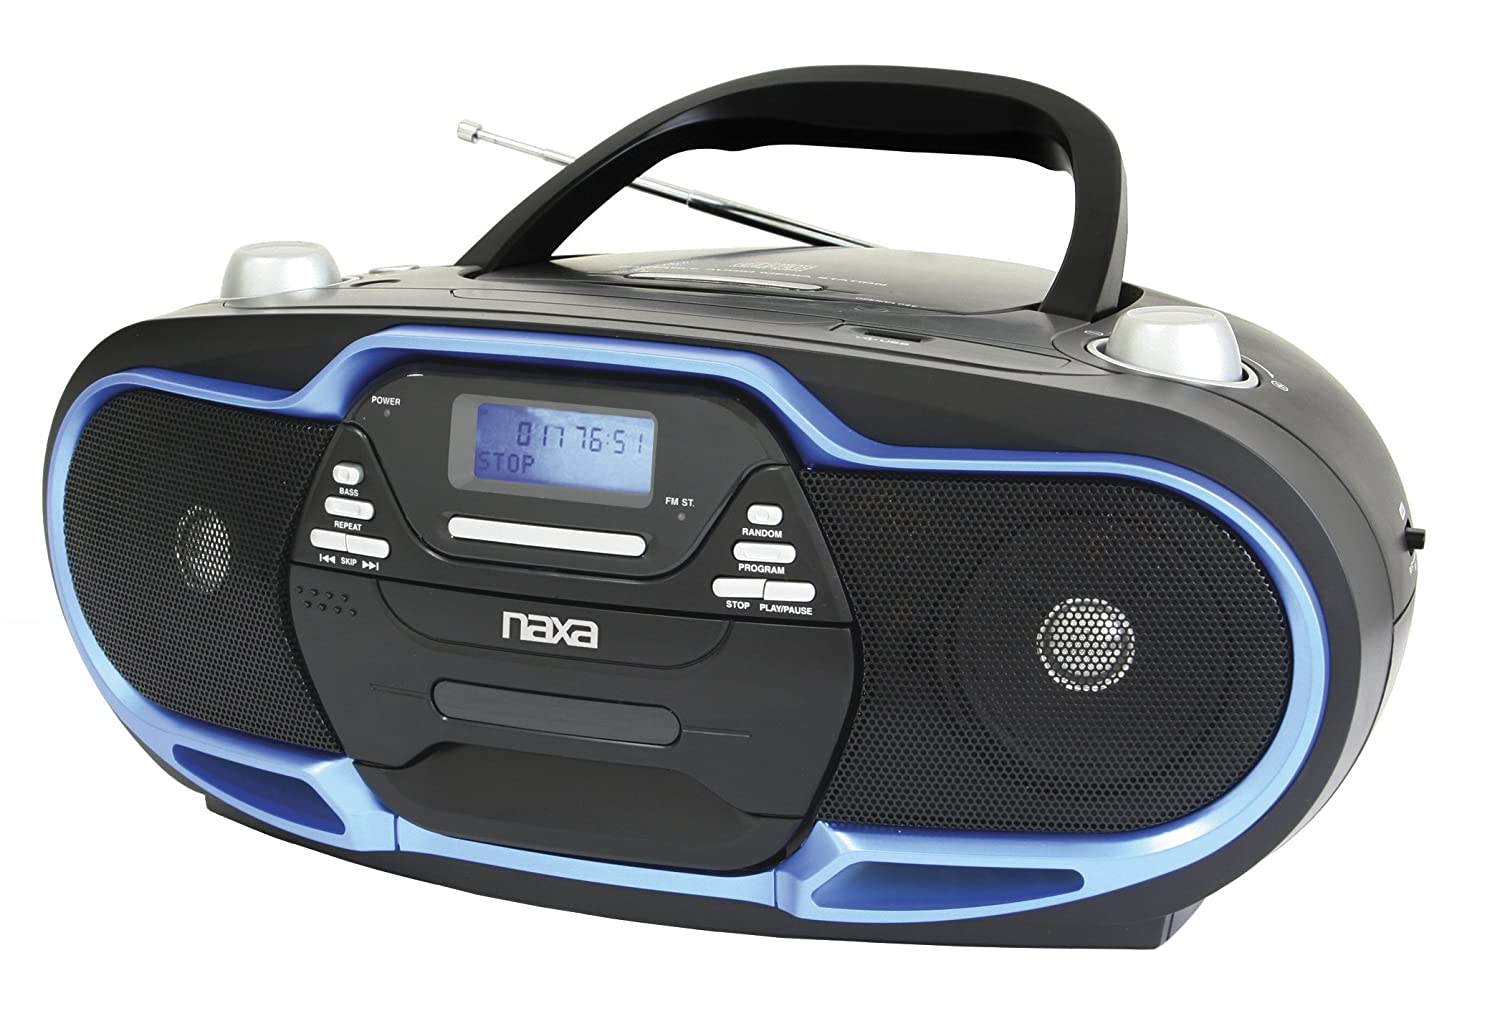 naxa portable mp3 cd player am fm stereo radio usb input